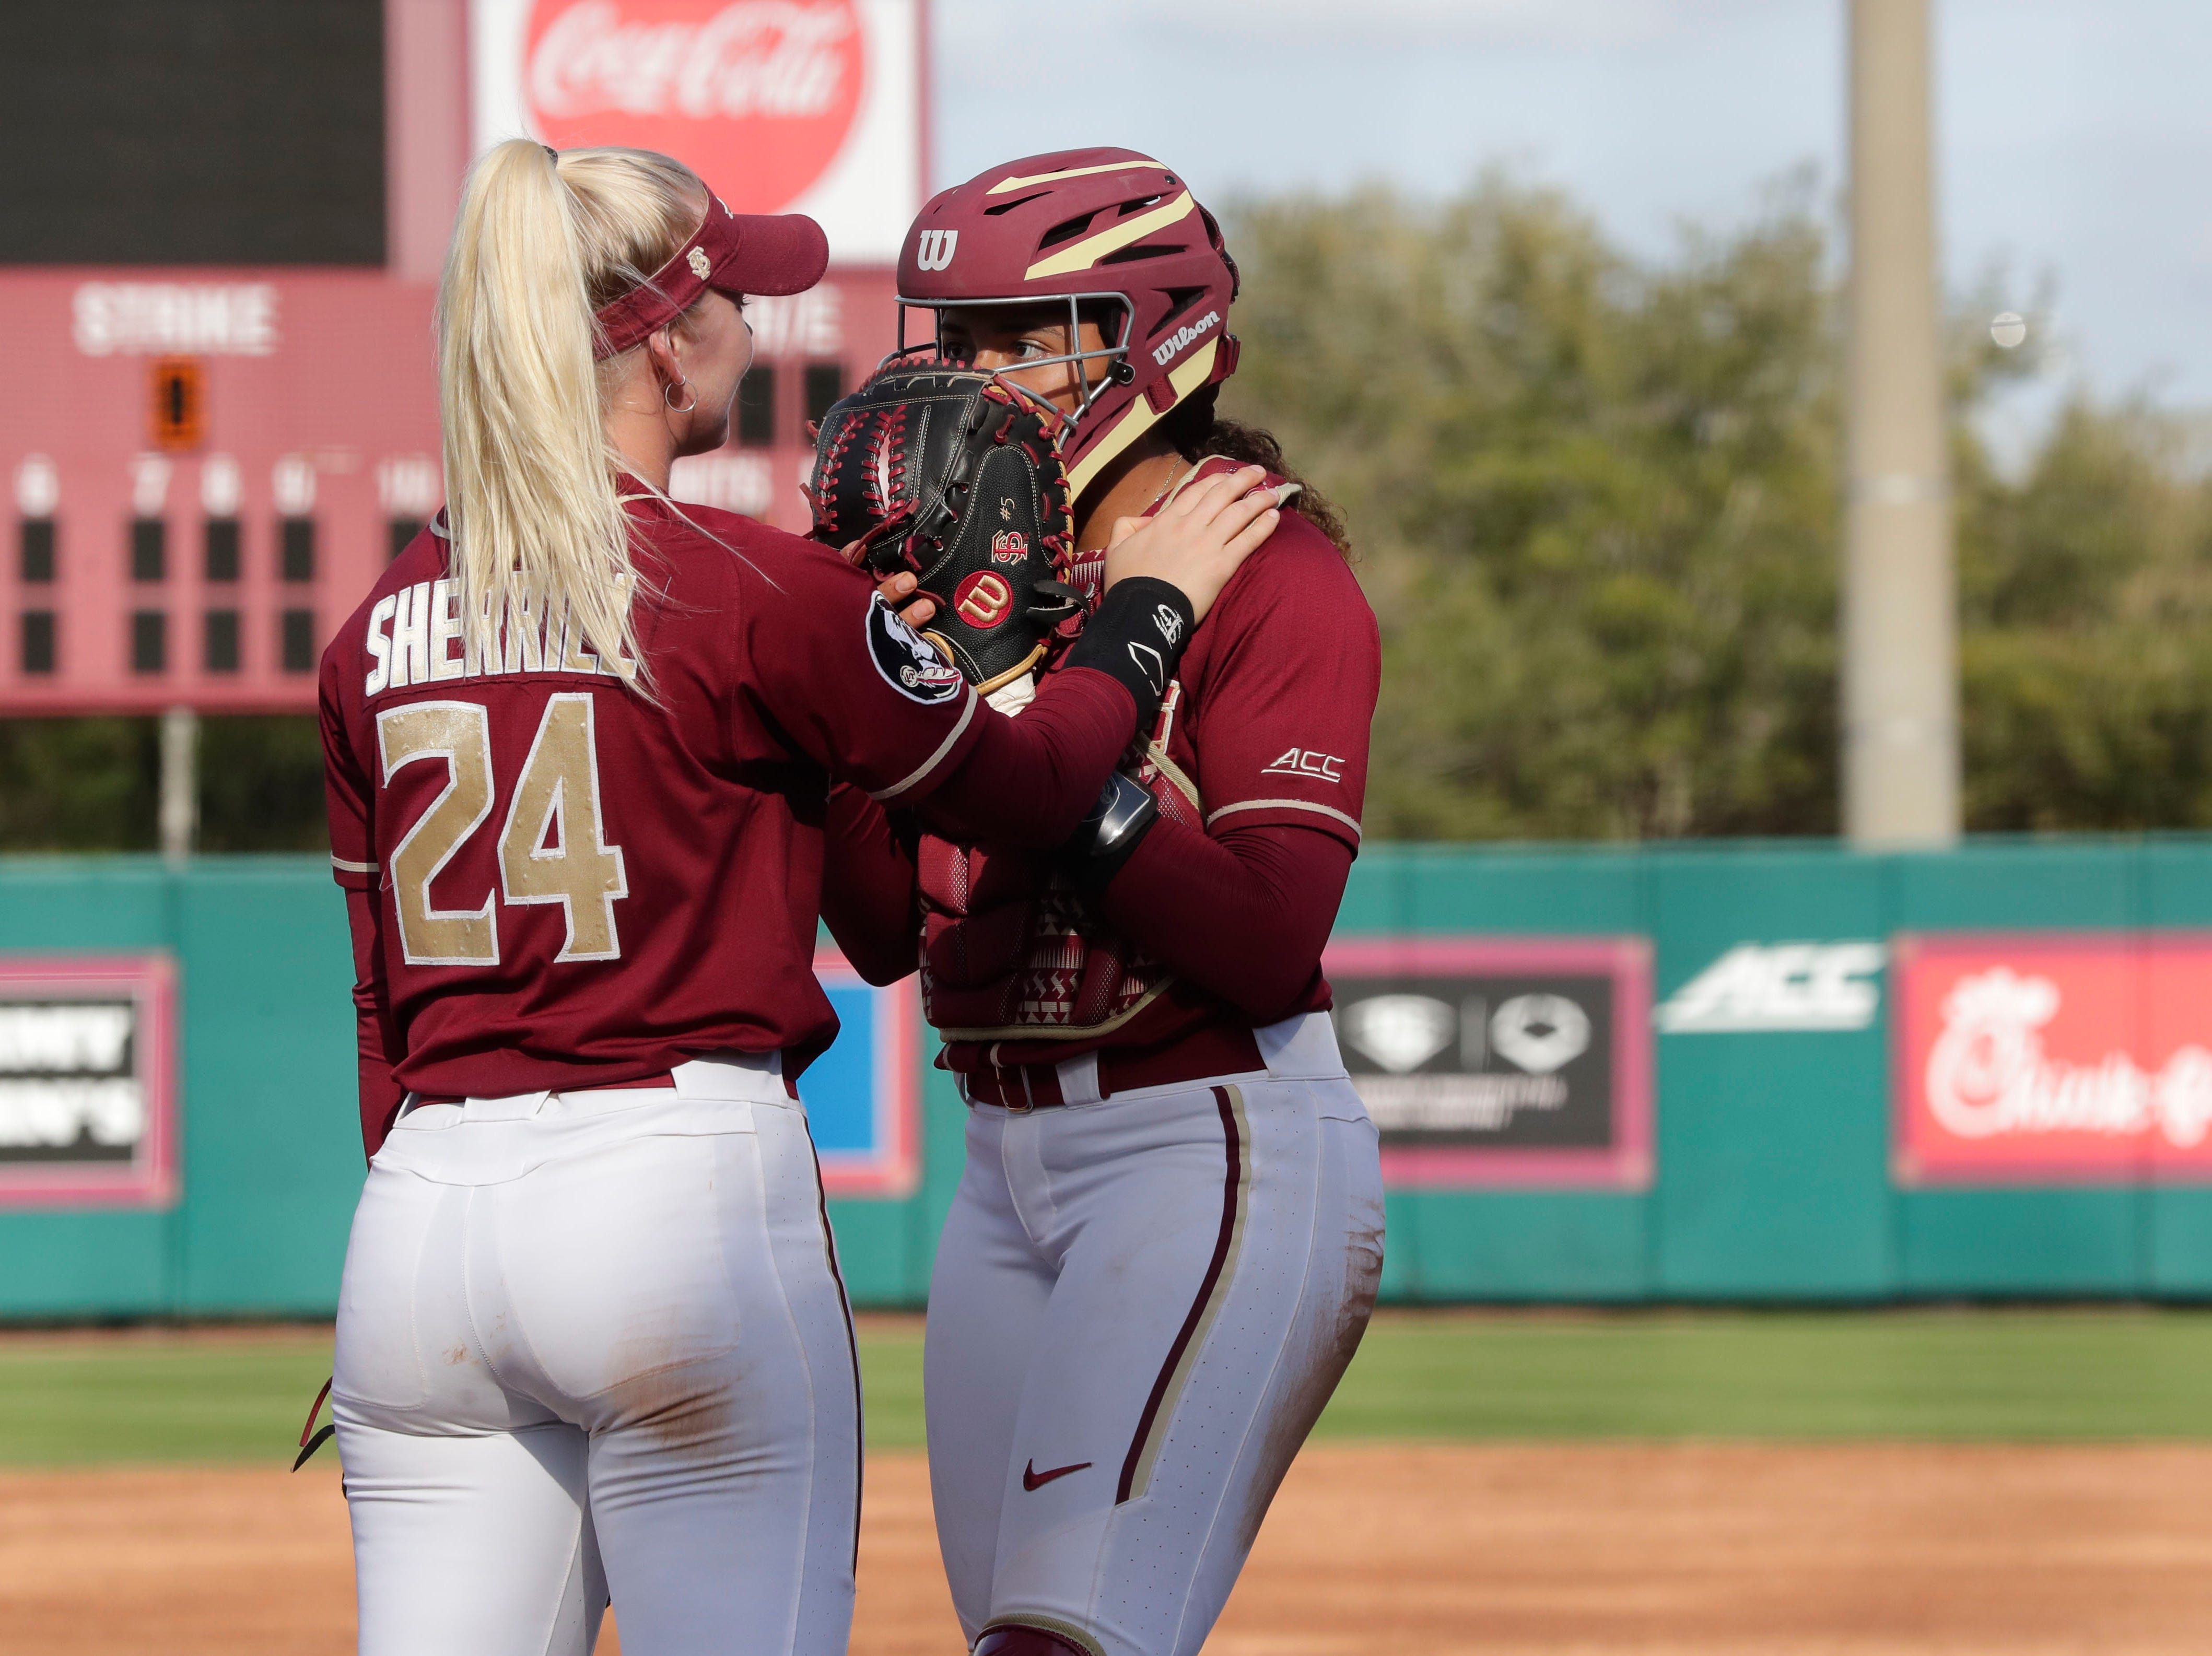 Florida State Seminoles utility player Sydney Sherrill (24) talks with Florida State Seminoles catcher Elizabeth Mason (5). The Florida State Seminoles host the Elon Phoenixes for the Unconquered Tournament, Friday Feb. 22, 2019.